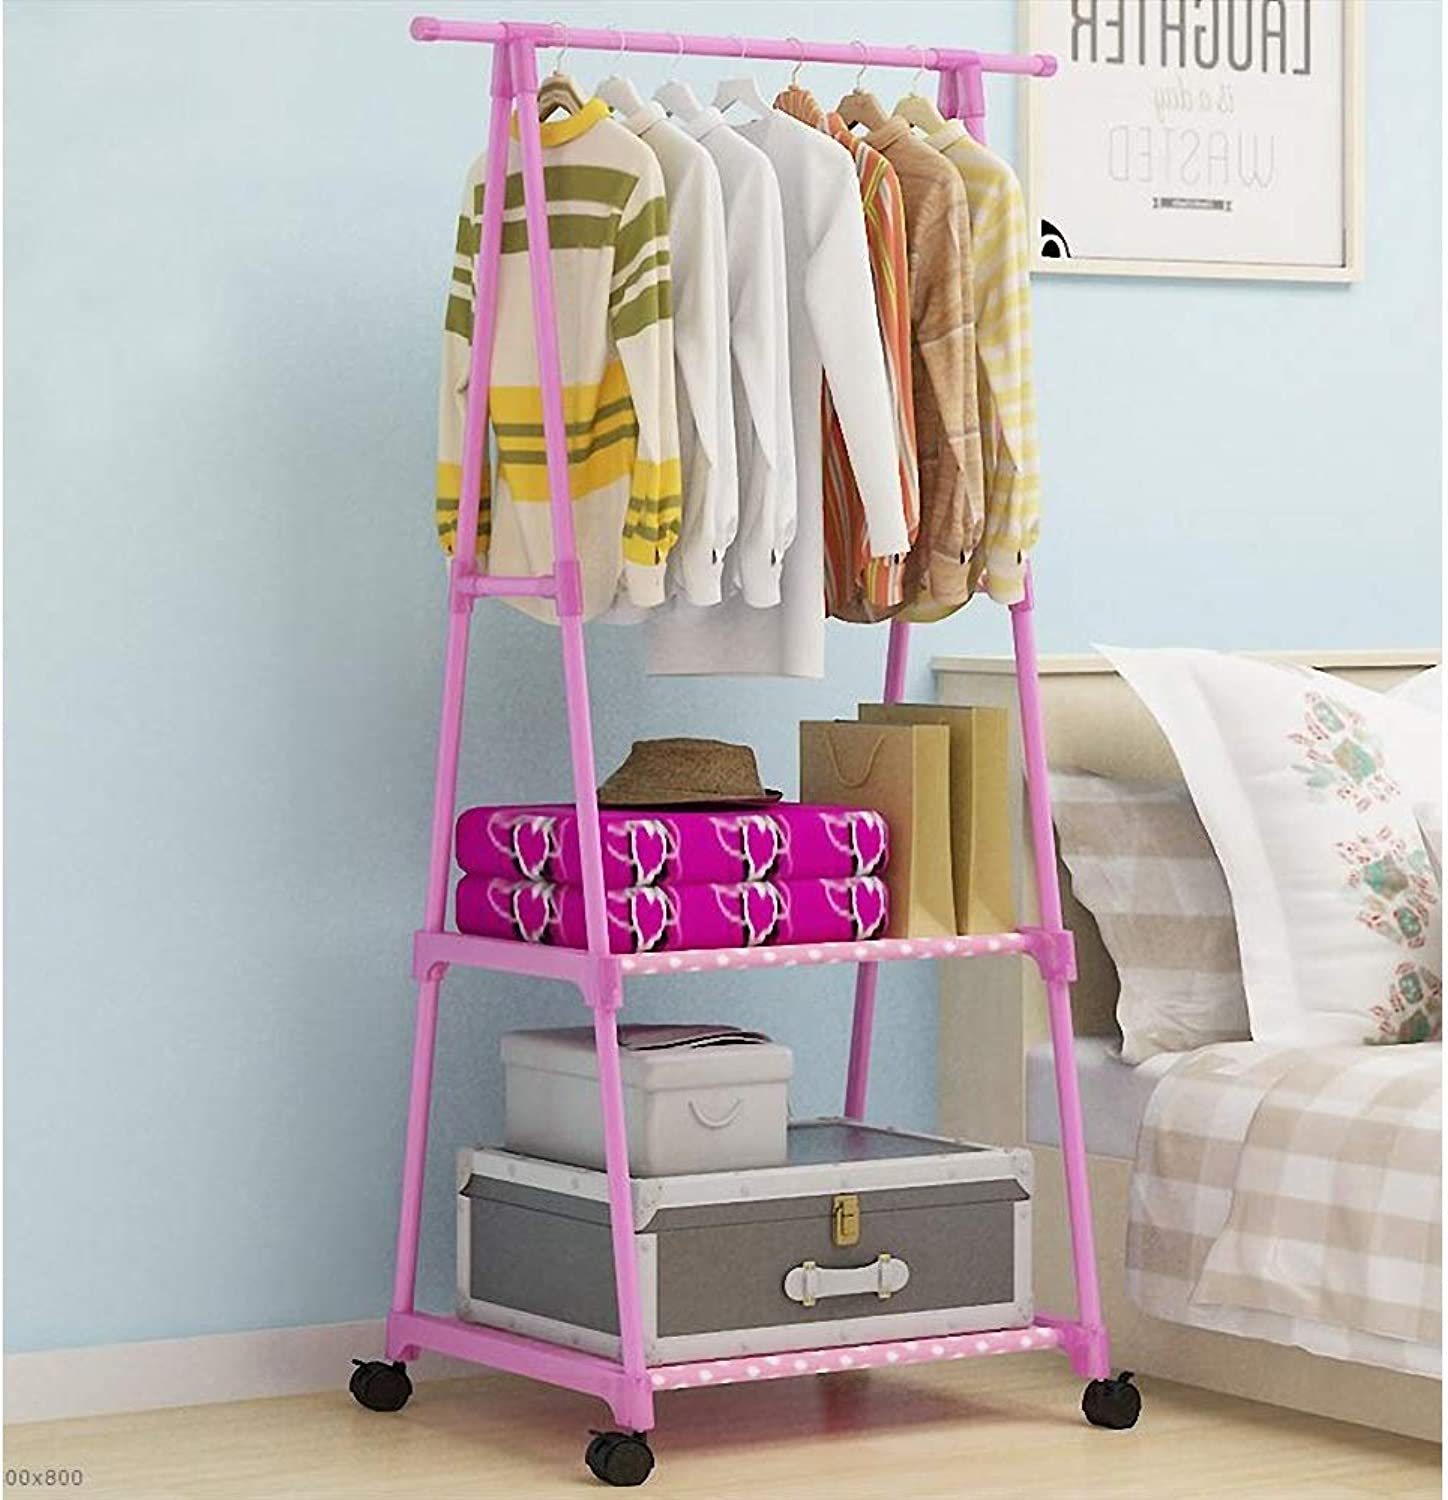 Simple Coat Rack Bedroom Drying Rack Floor Clothes Rack Wrought Iron Pipe with Wheel Hanger (color   Pink, Size   165  55  42cm)